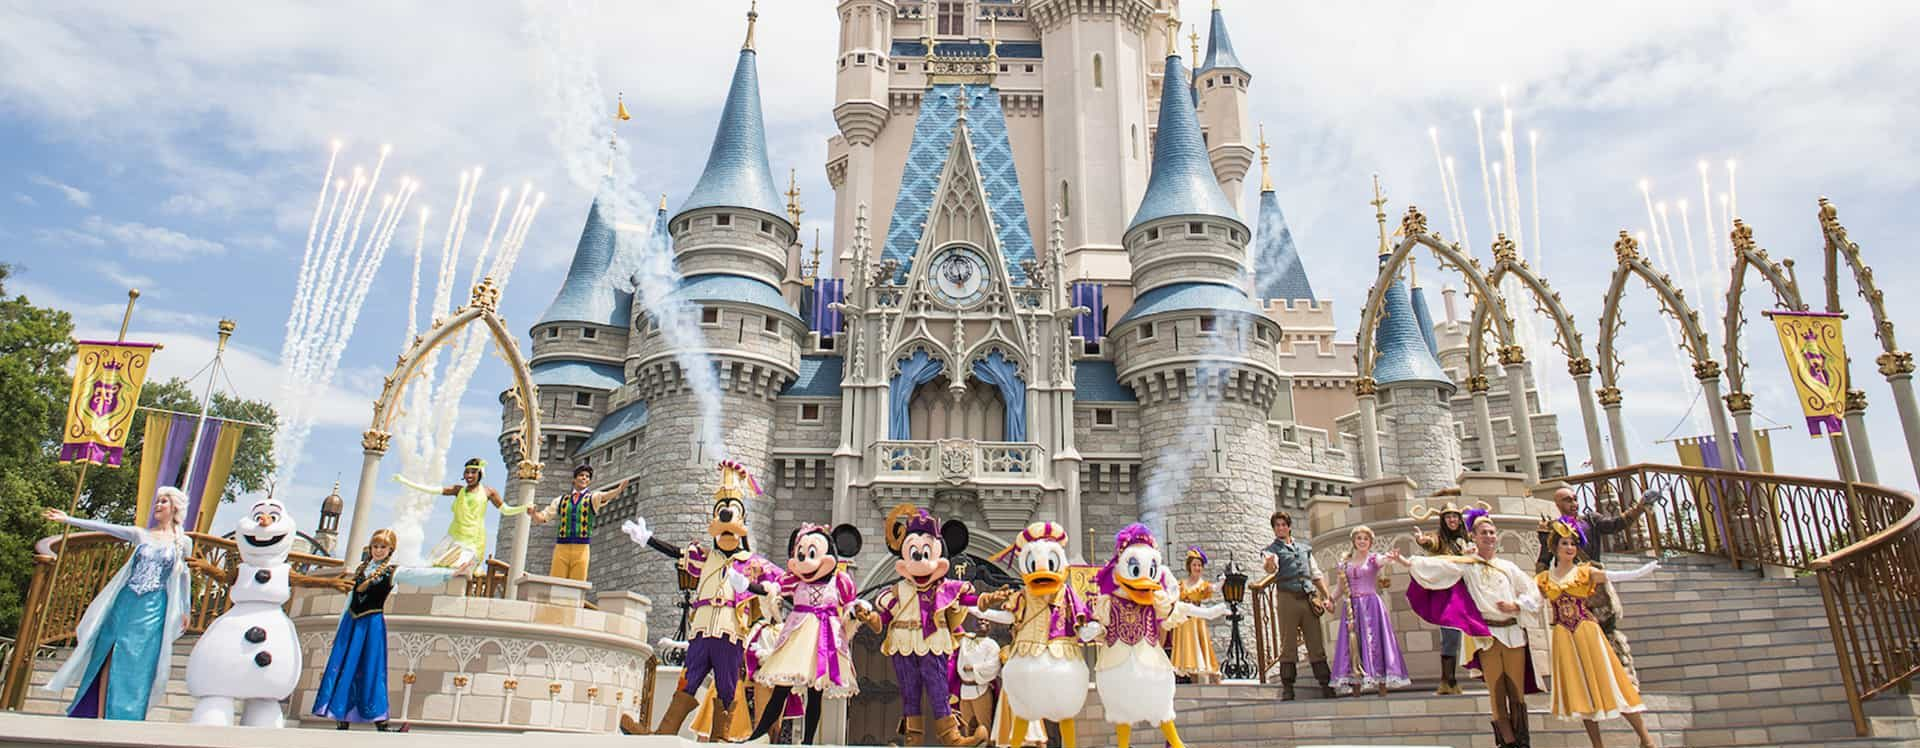 Disney World Castle | Living With The Magic Vacations